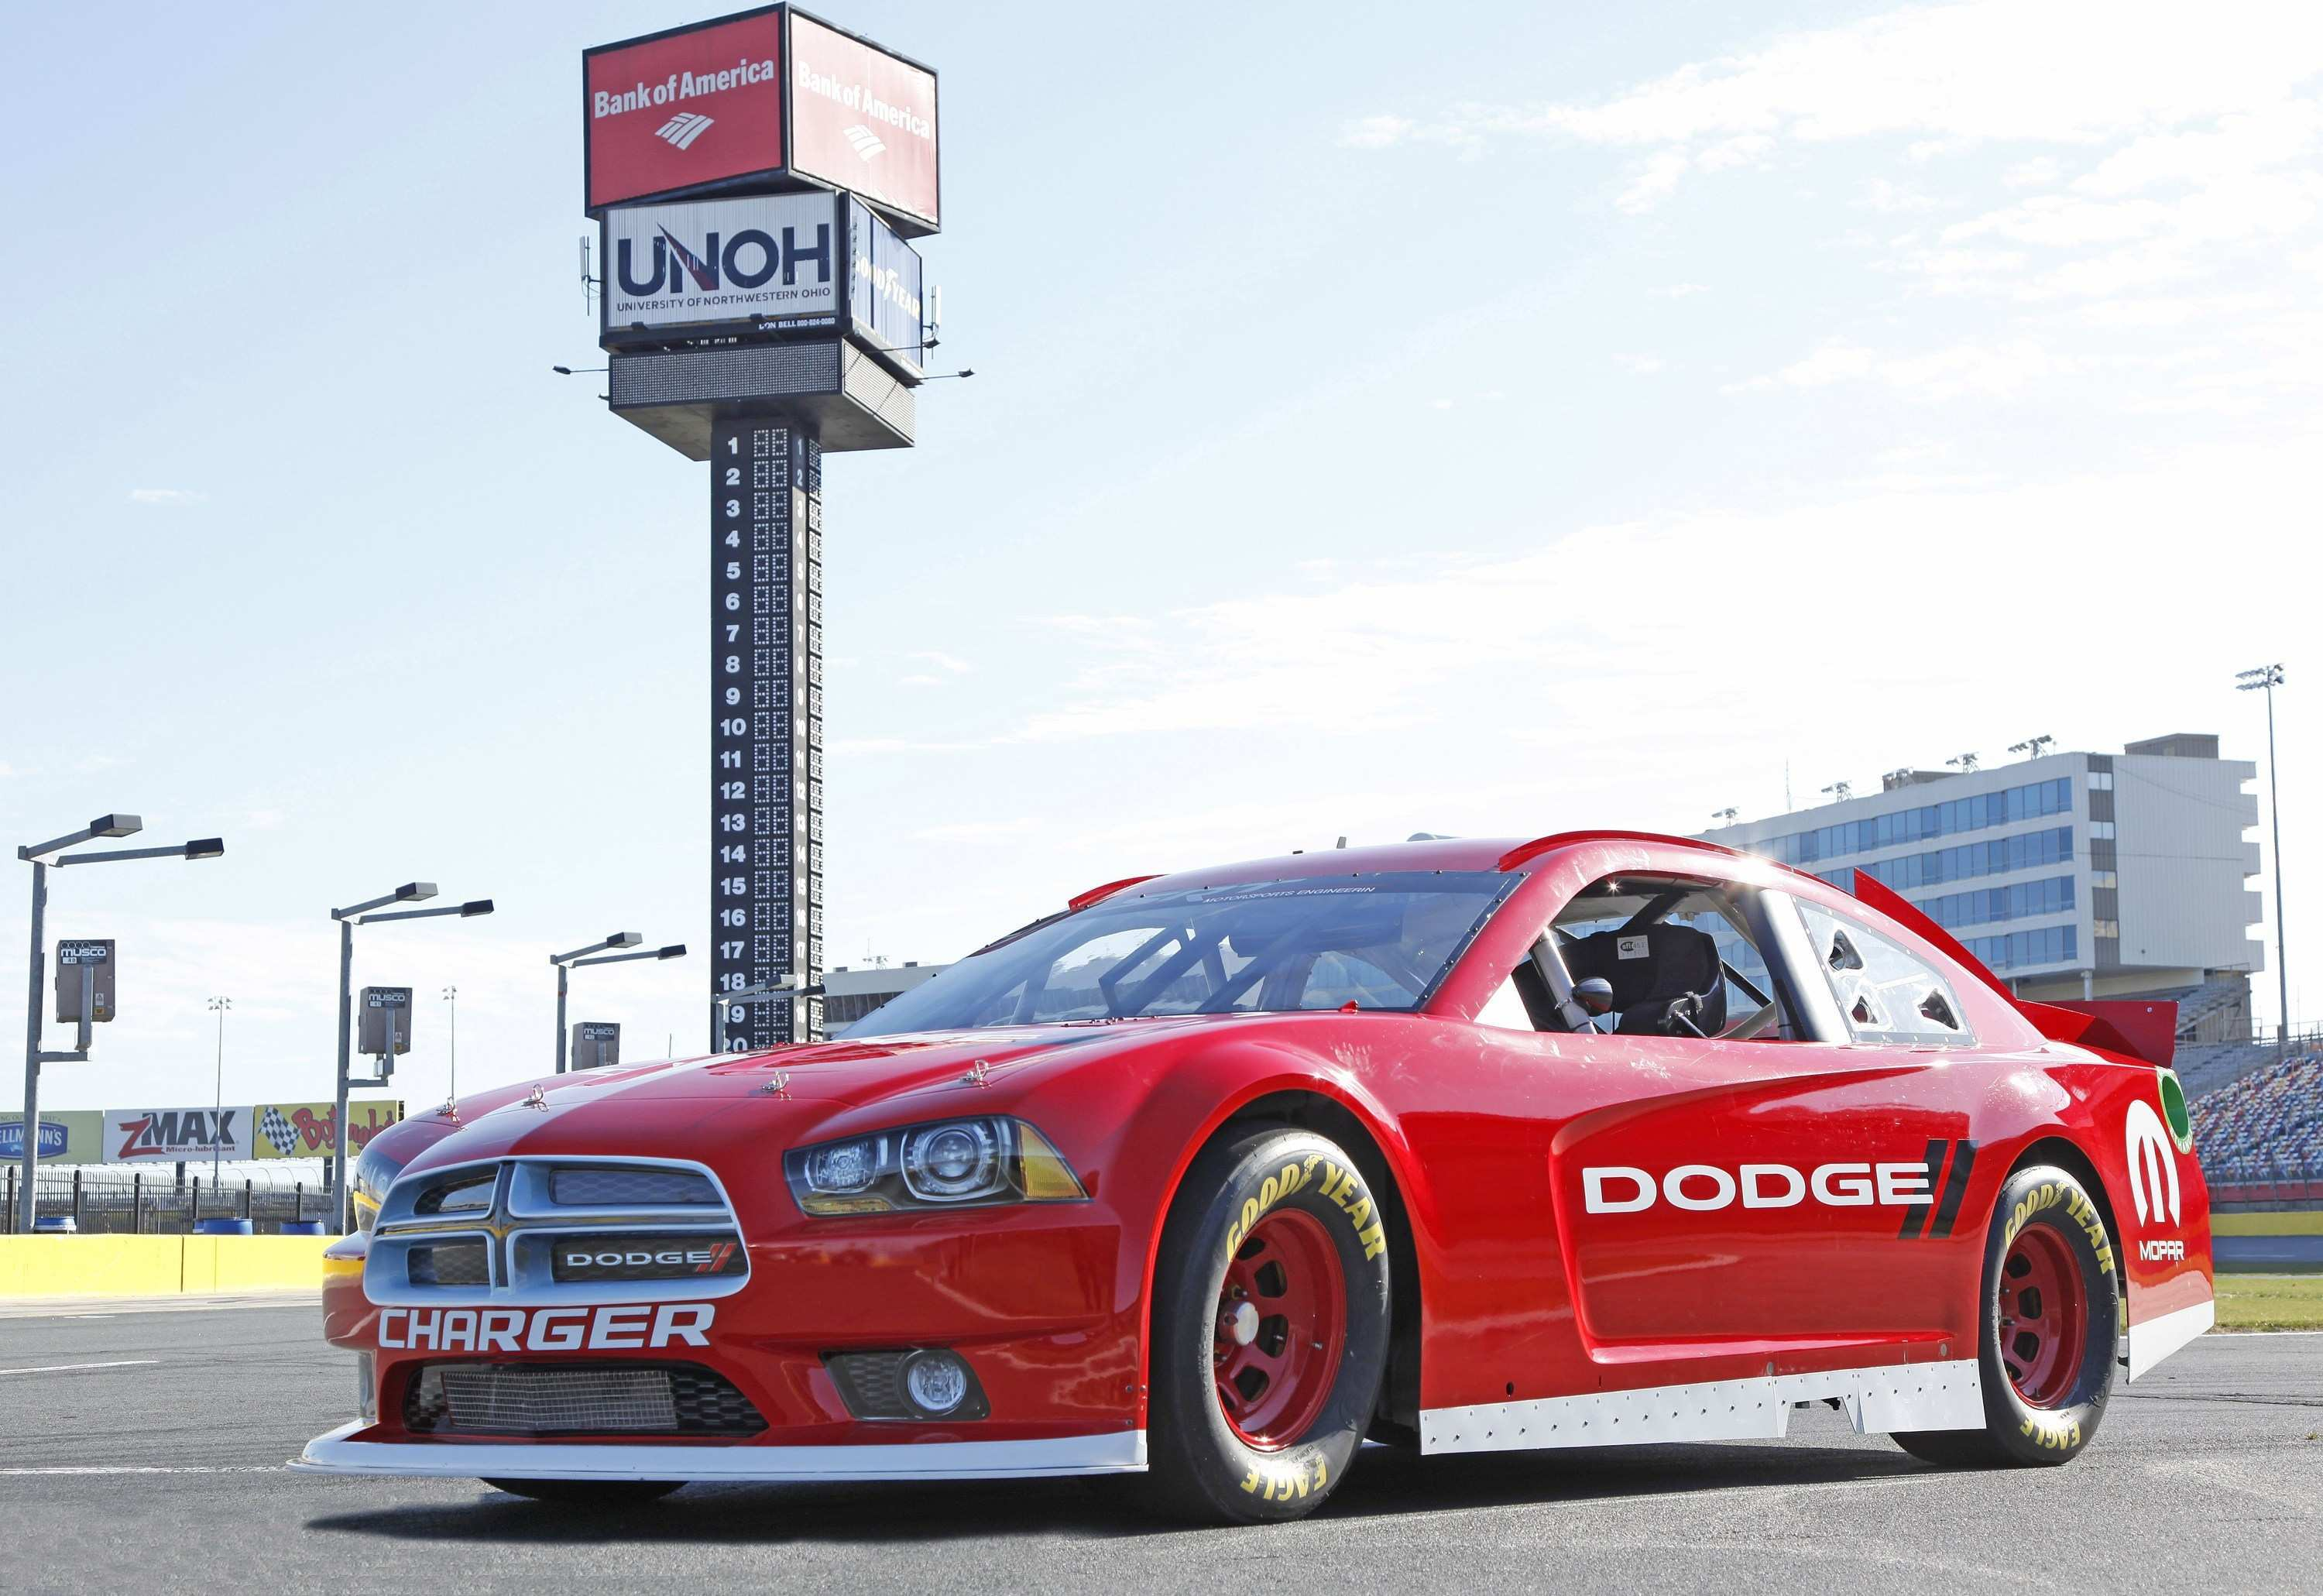 49 Concept of Dodge In Nascar 2020 Concept with Dodge In Nascar 2020